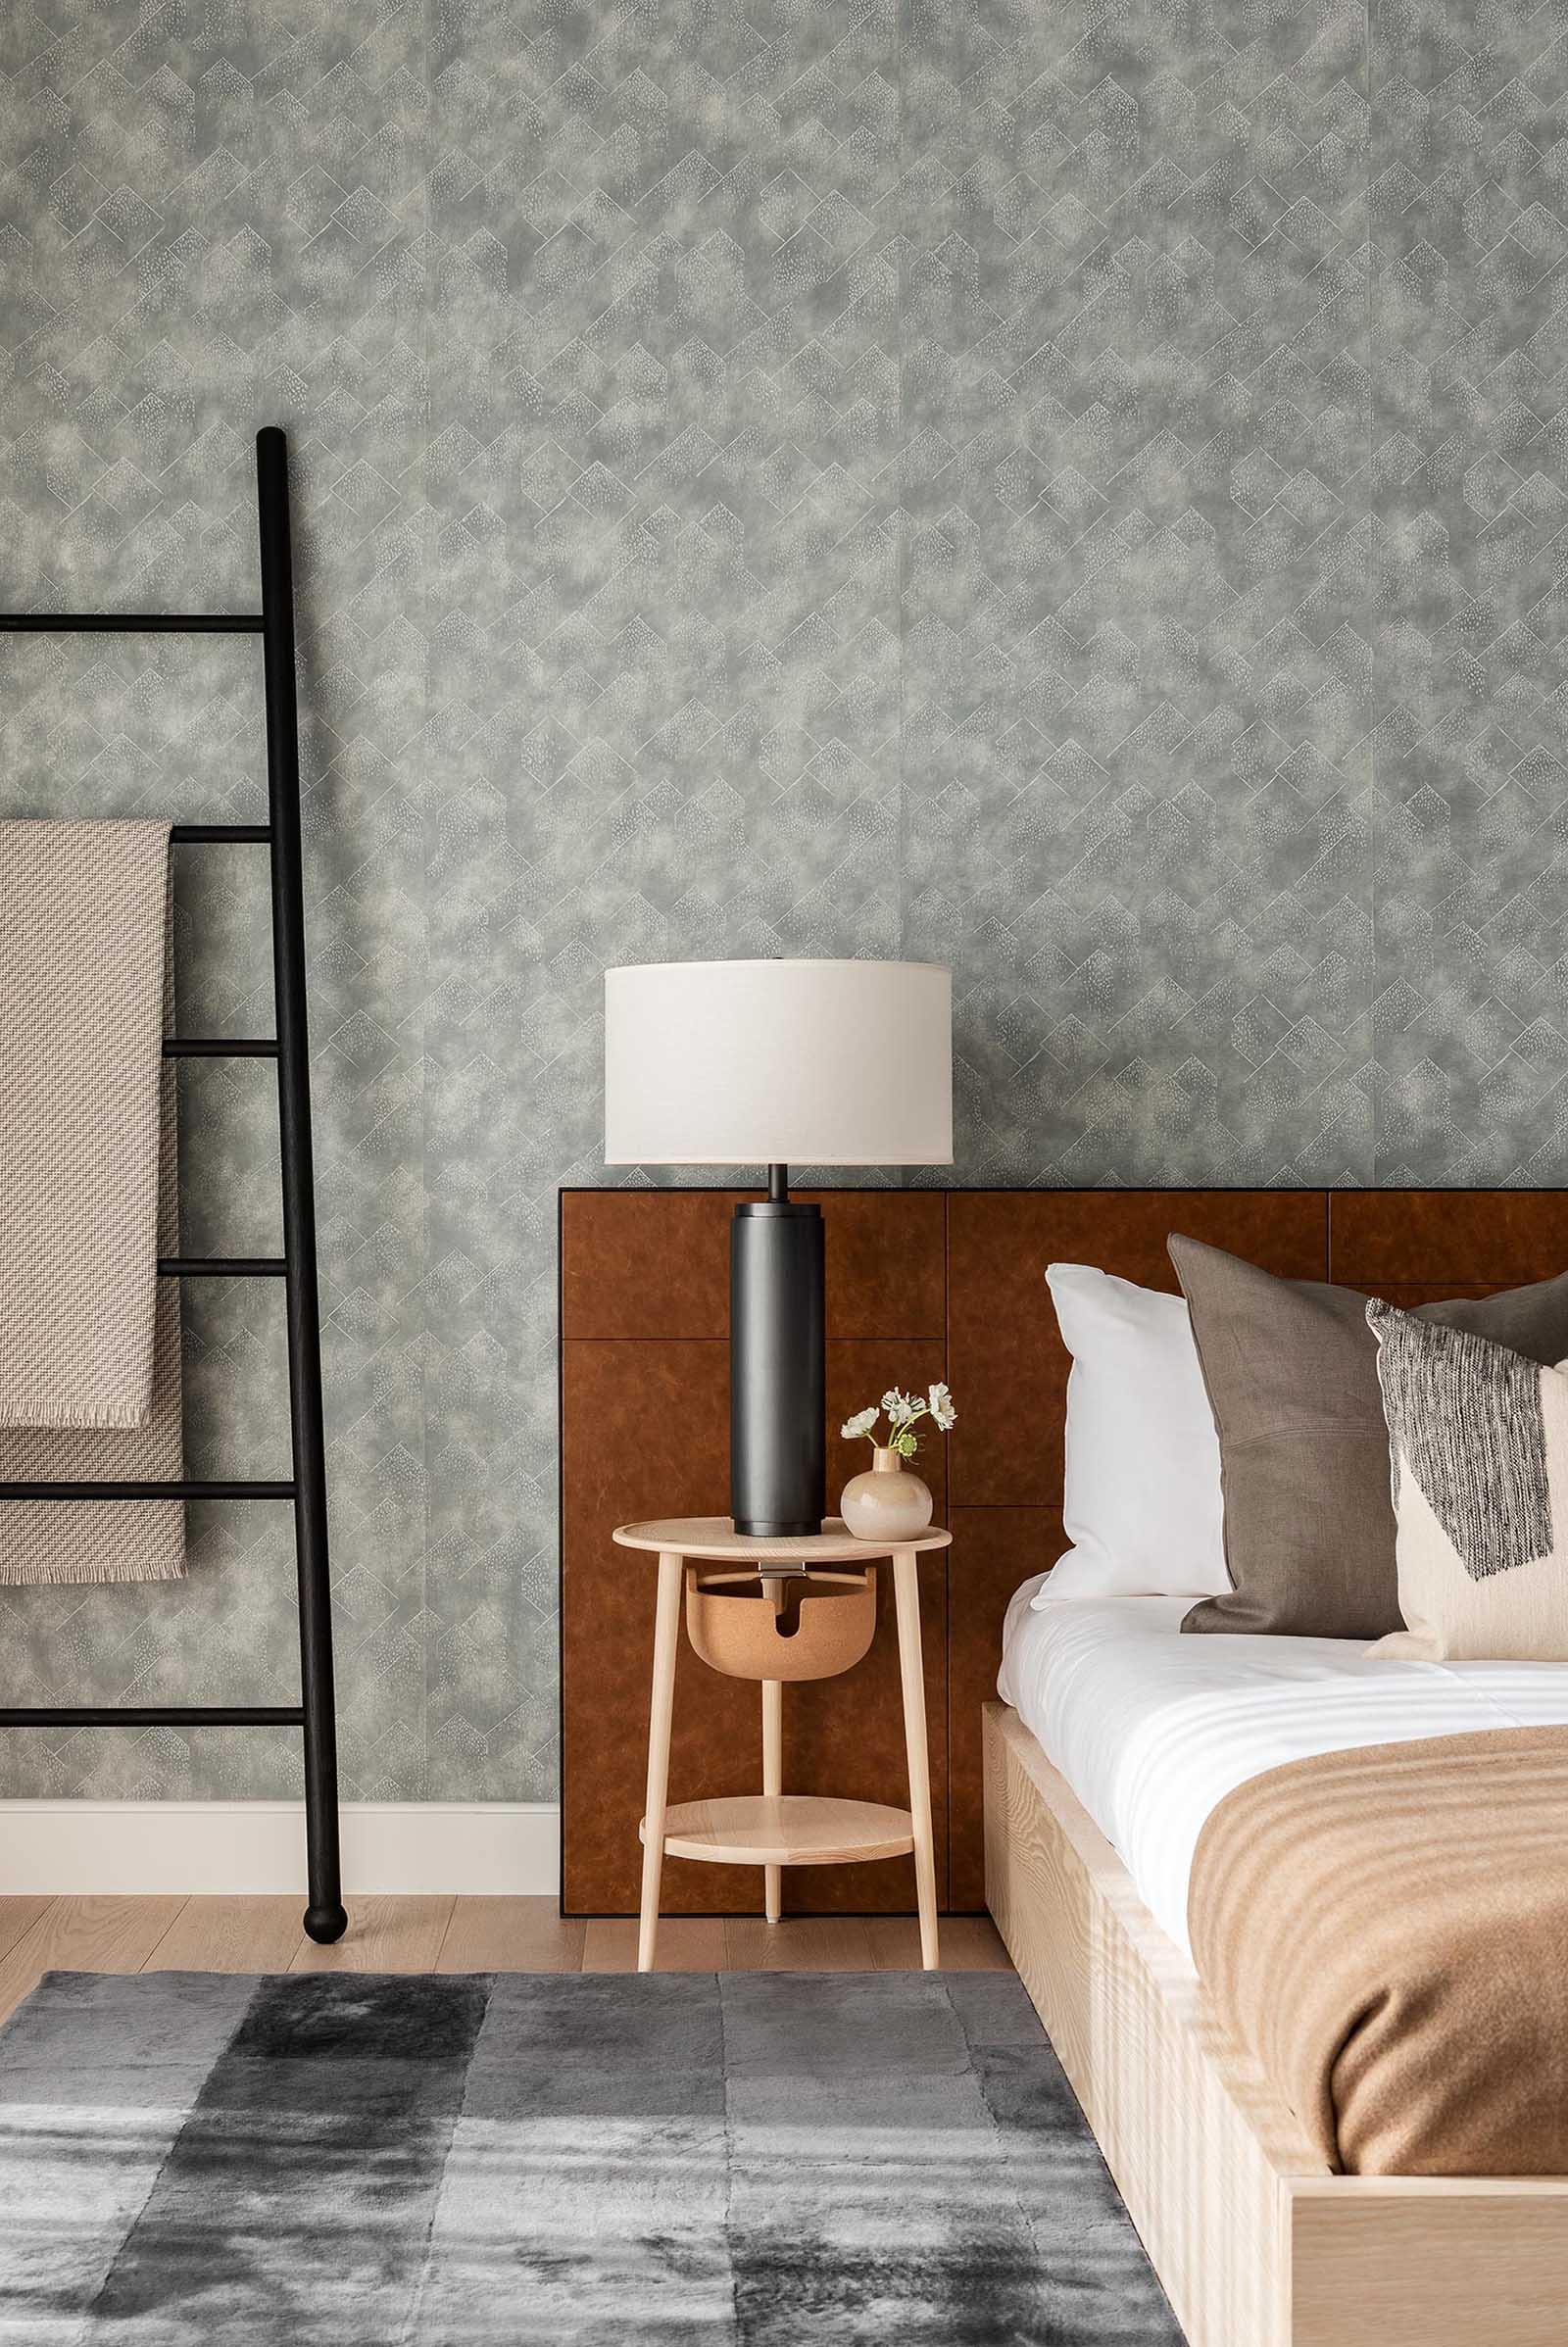 In this modern bedroom, there's a muted gray wallpaper that covers the entire wall, creating a backdrop for the bed, while minimalist pendant light hangs from the ceiling, and a matte black ladder provides a place to hang blankets.